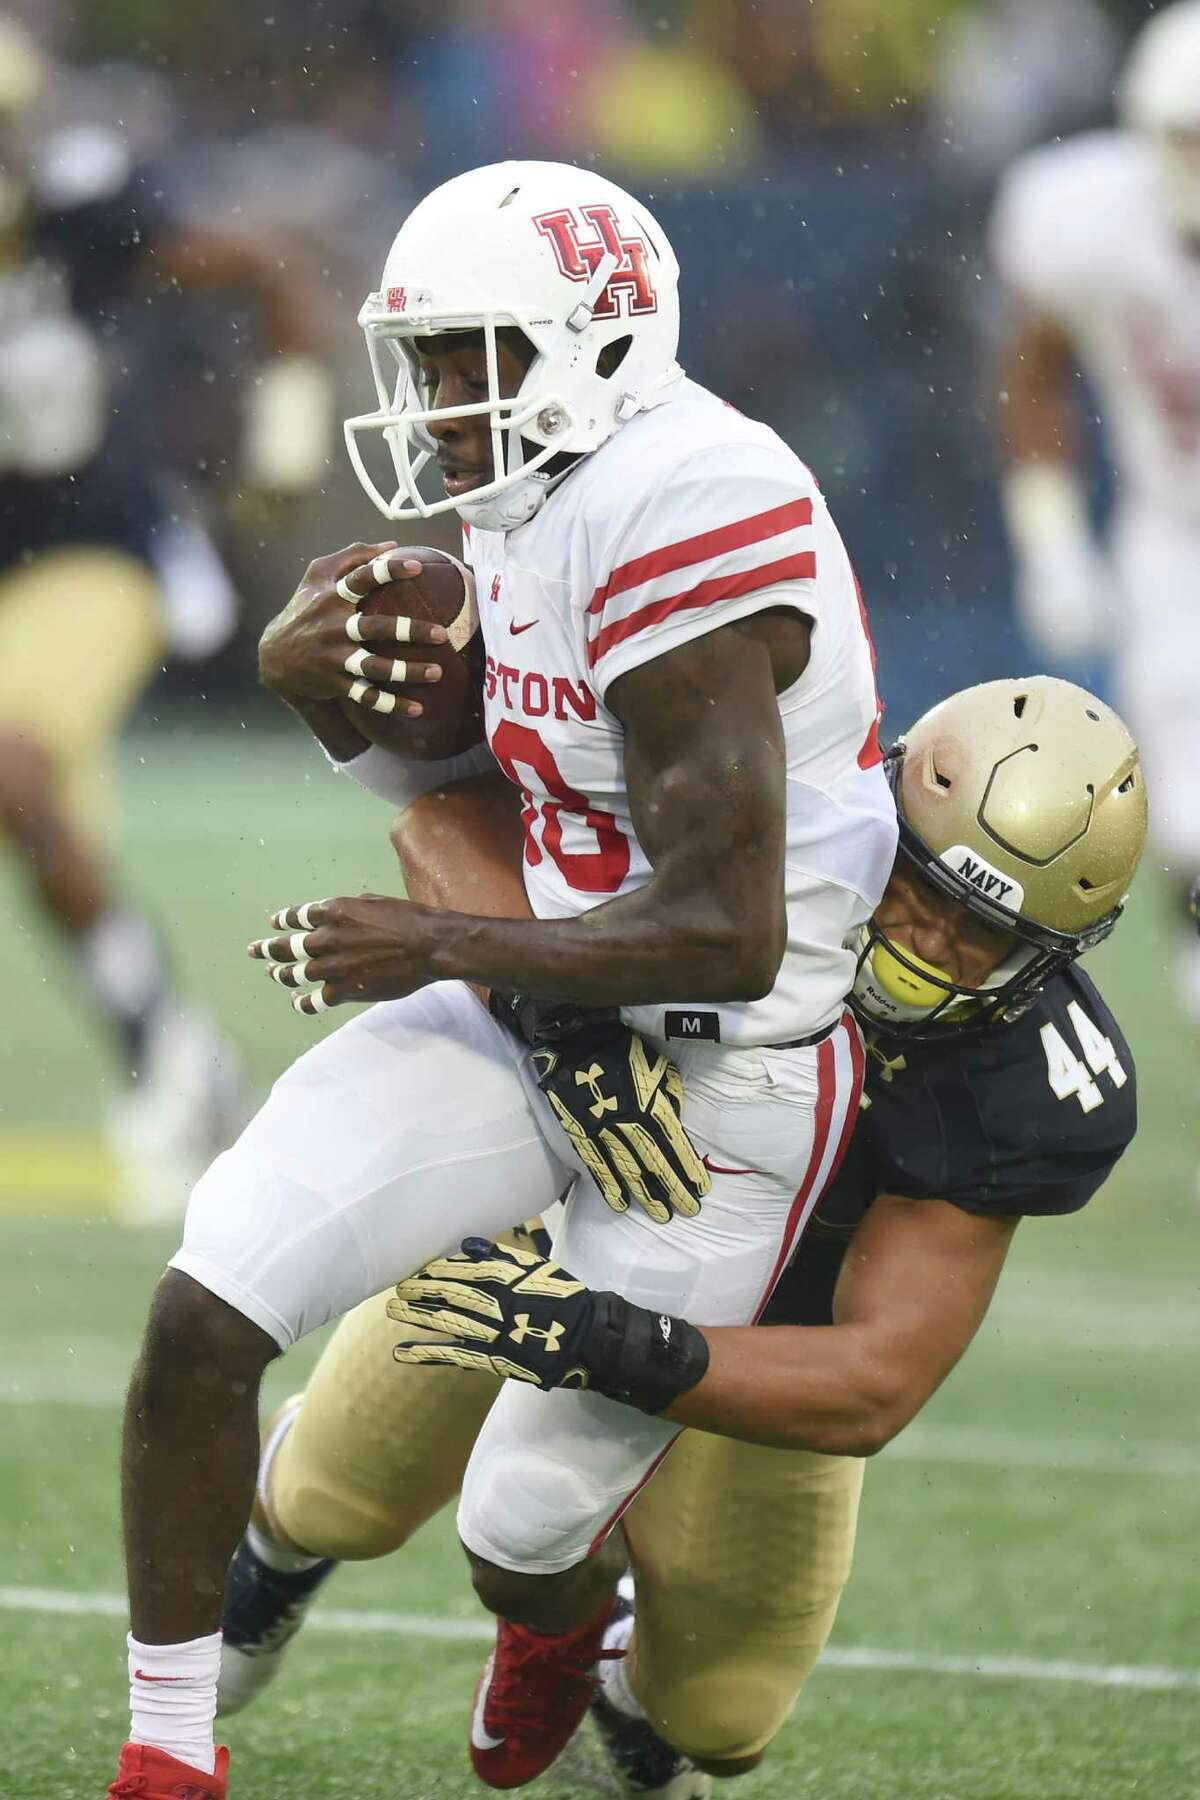 STOCK UP Steven Dunbar Not to be overshadowed, Dunbar is another UH receiver off to fast start in the first half of the season. Dunbar is coming off nine catches for 112 yards and a touchdown at Navy. For the season, Dunbar has 30 catches for 438 yards and team-best three touchdowns.